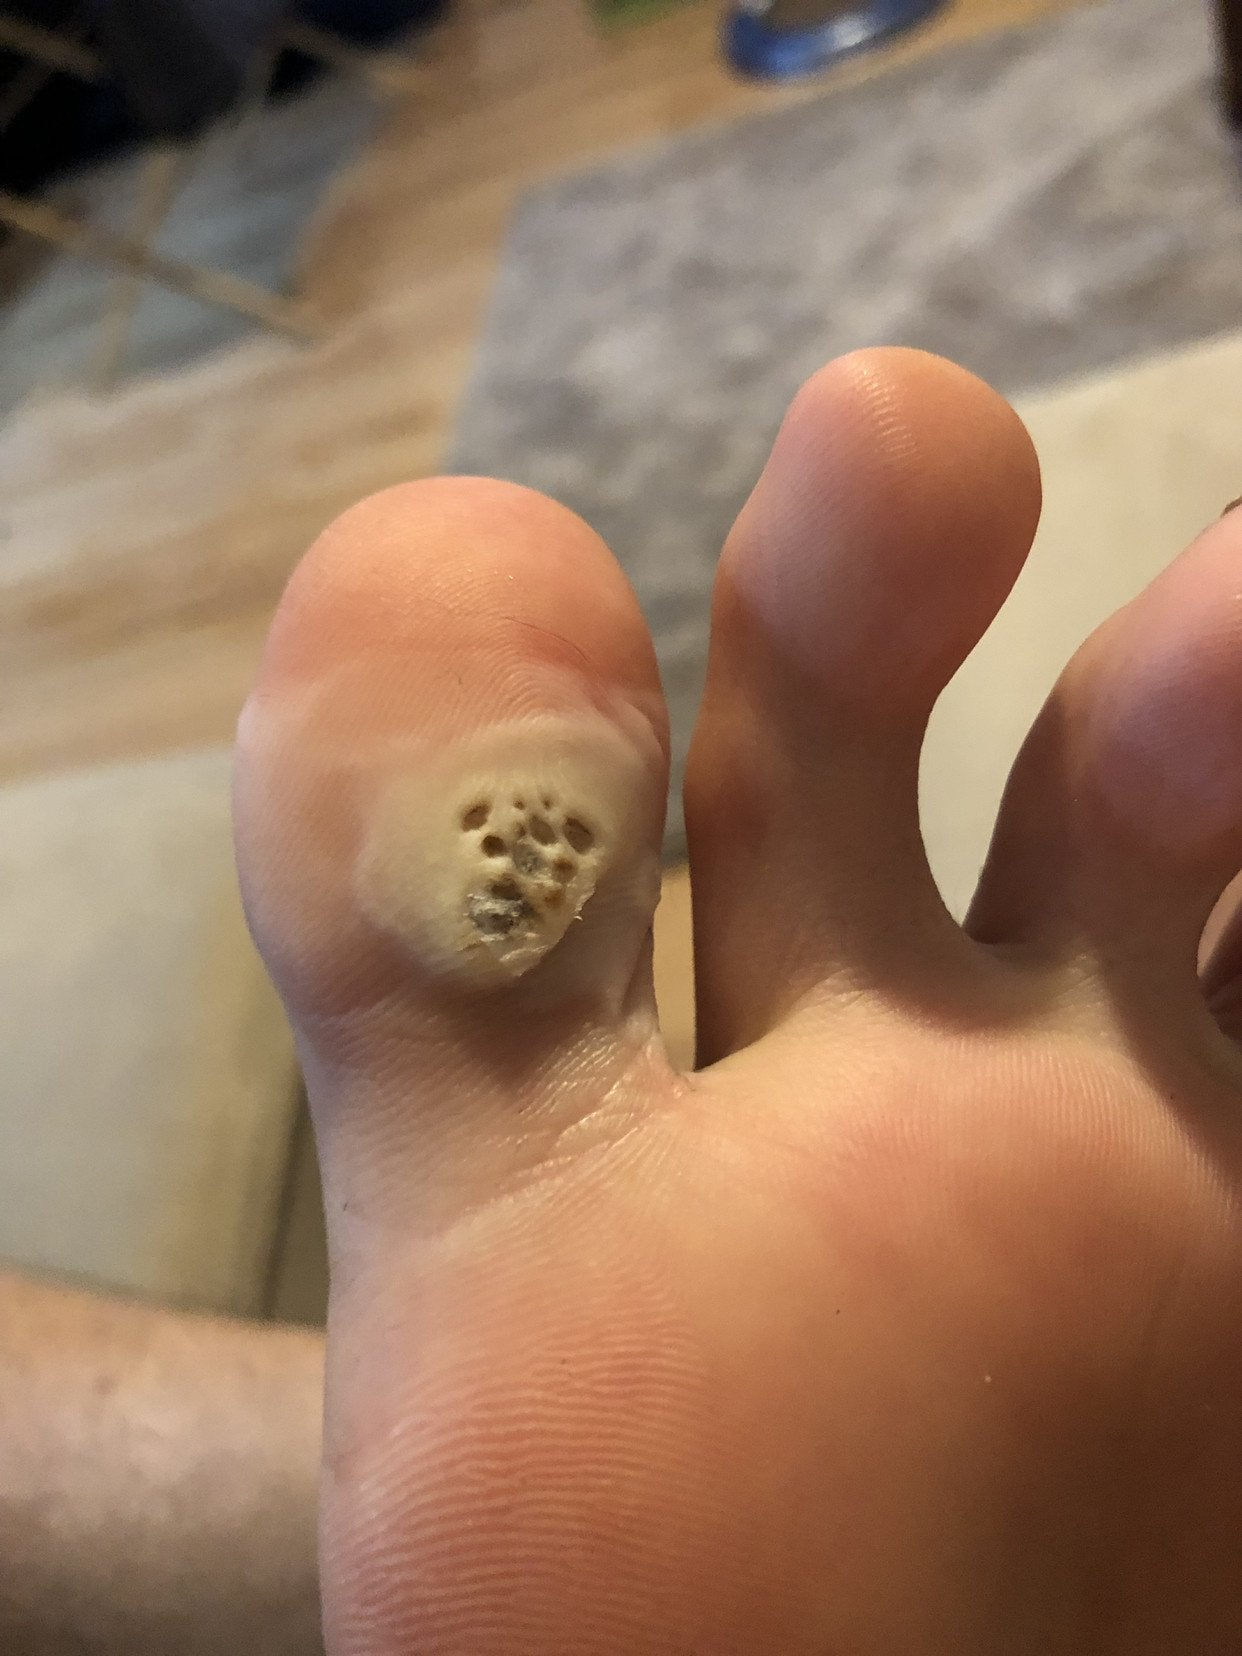 Plantar wart on foot duct tape